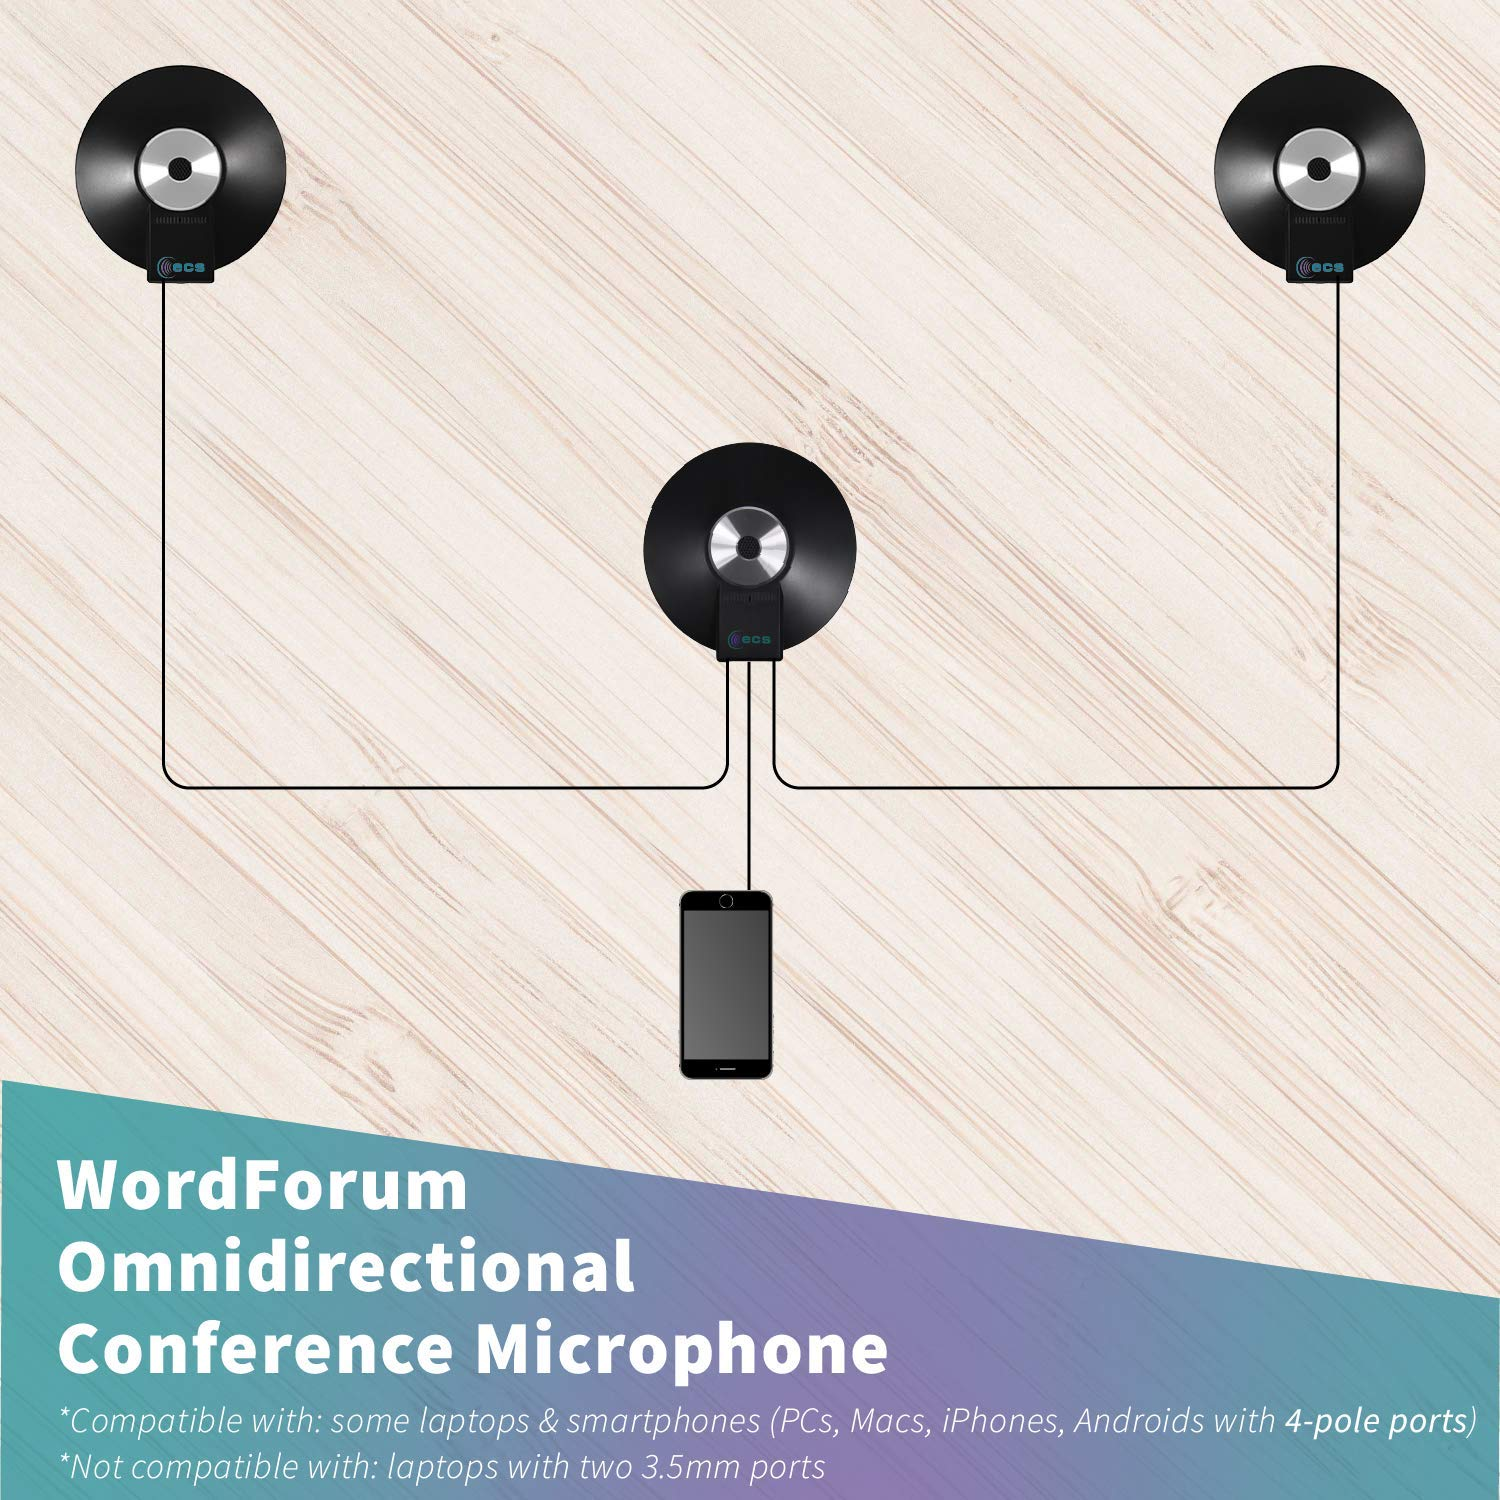 2 1 Android Tablets with 3.5 mm 4 Pole Jack Microsoft Surface WordForum 3.5 mm 4 Pole with Smartphone WordForum 3.5 mm 360/° Omni-Directional Conference Recording Microphones for iPhone